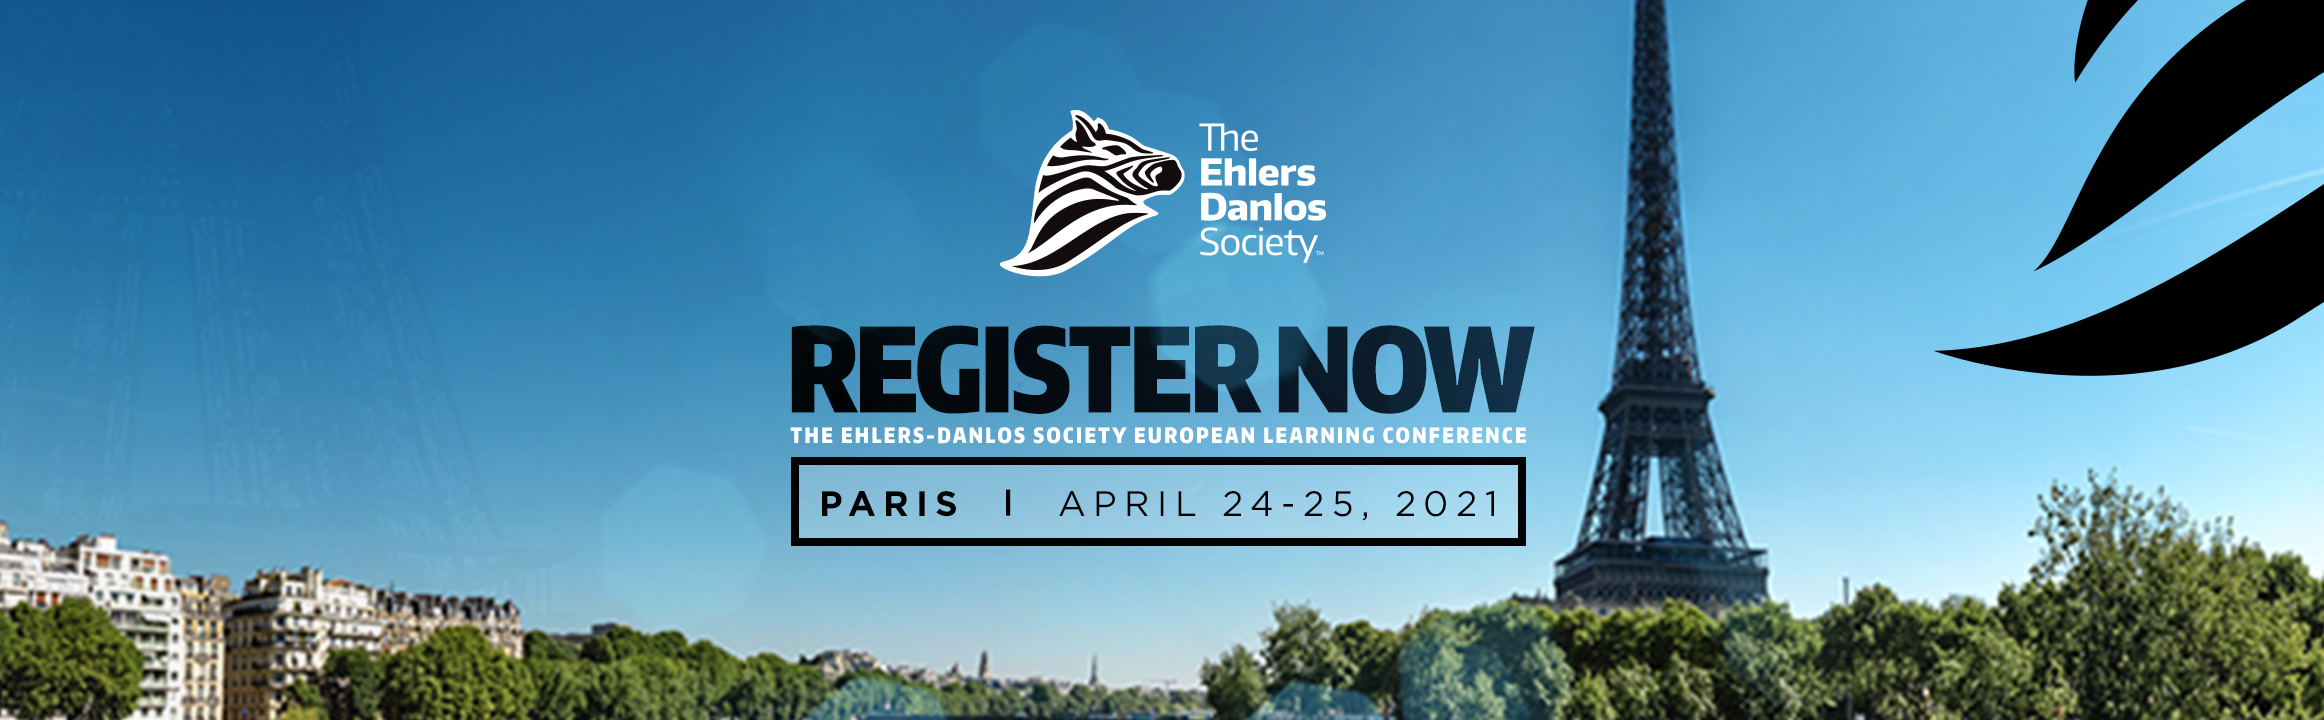 Register now for The Ehlers-Danlos Society conference in Paris